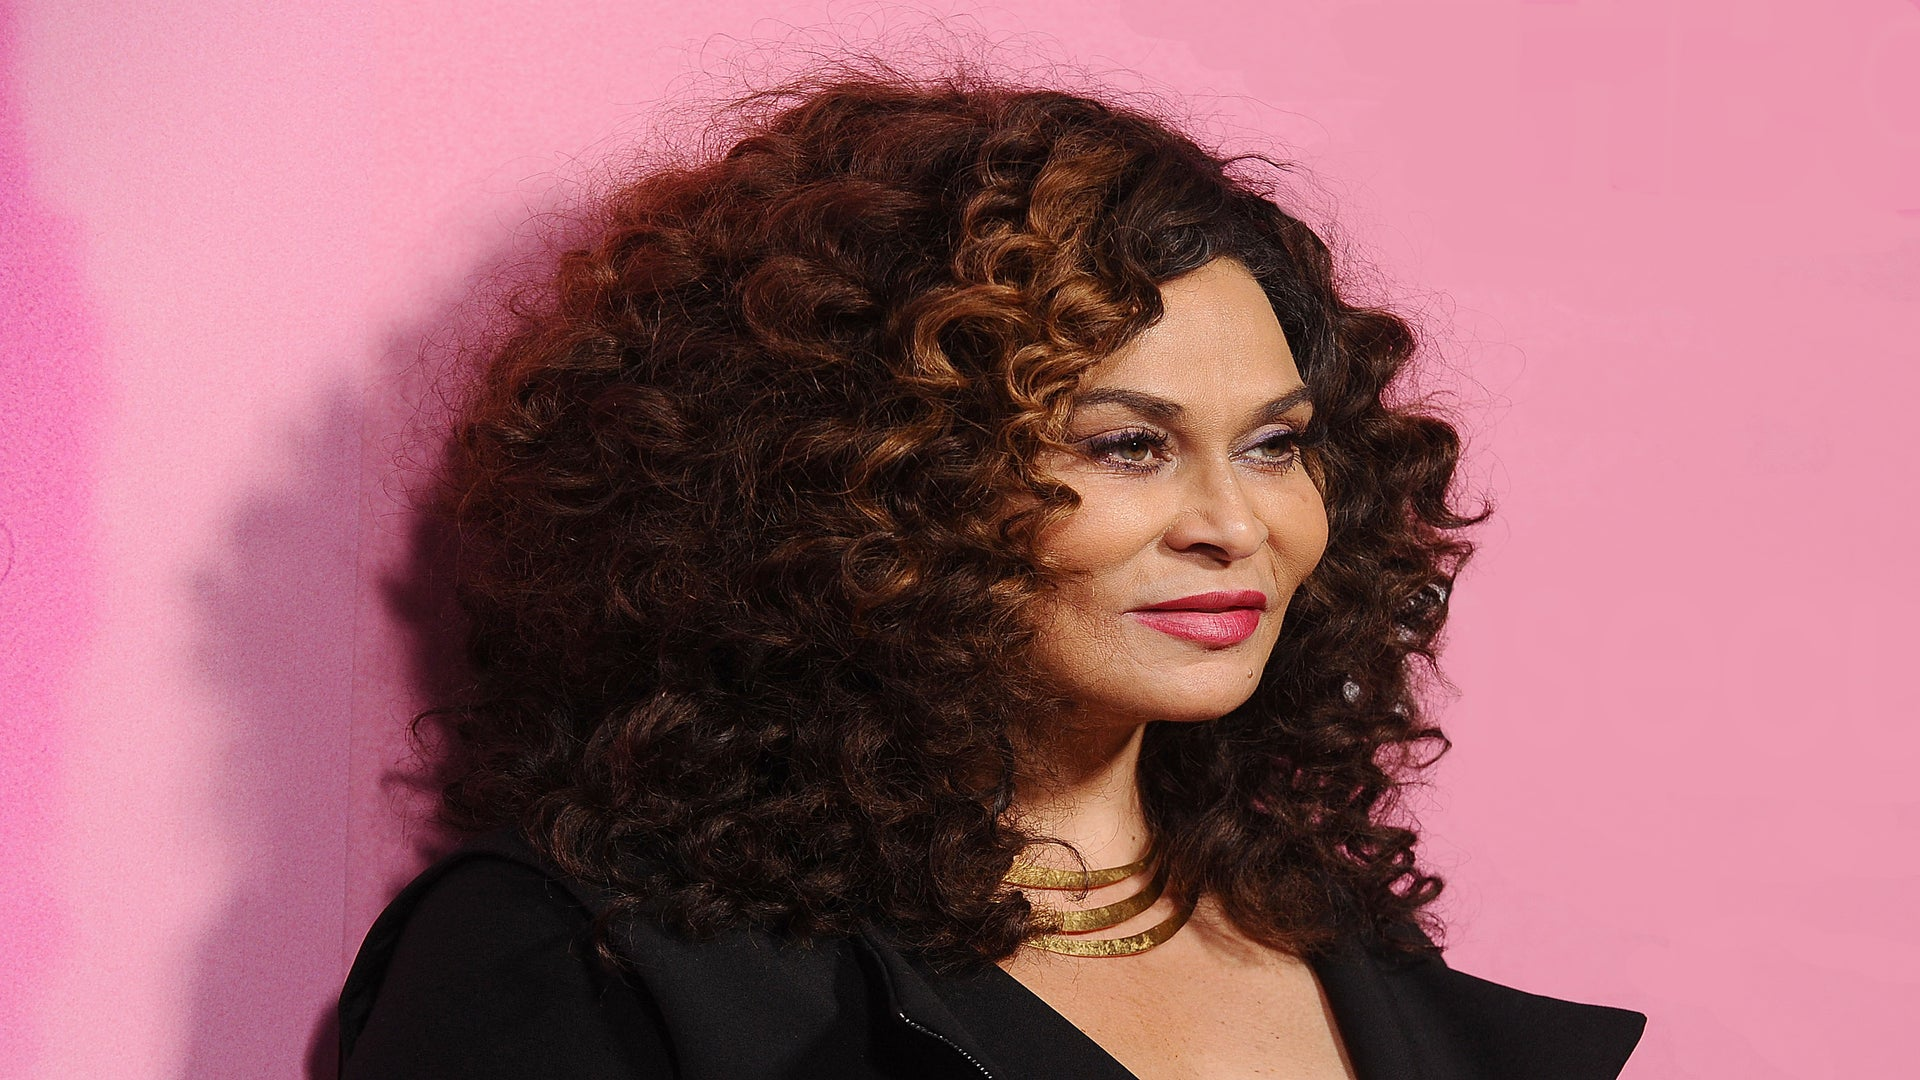 Mama Tina Or Tina Turner? Tina Knowles-Lawson Does A Hilarious Impression Of The Iconic Singer